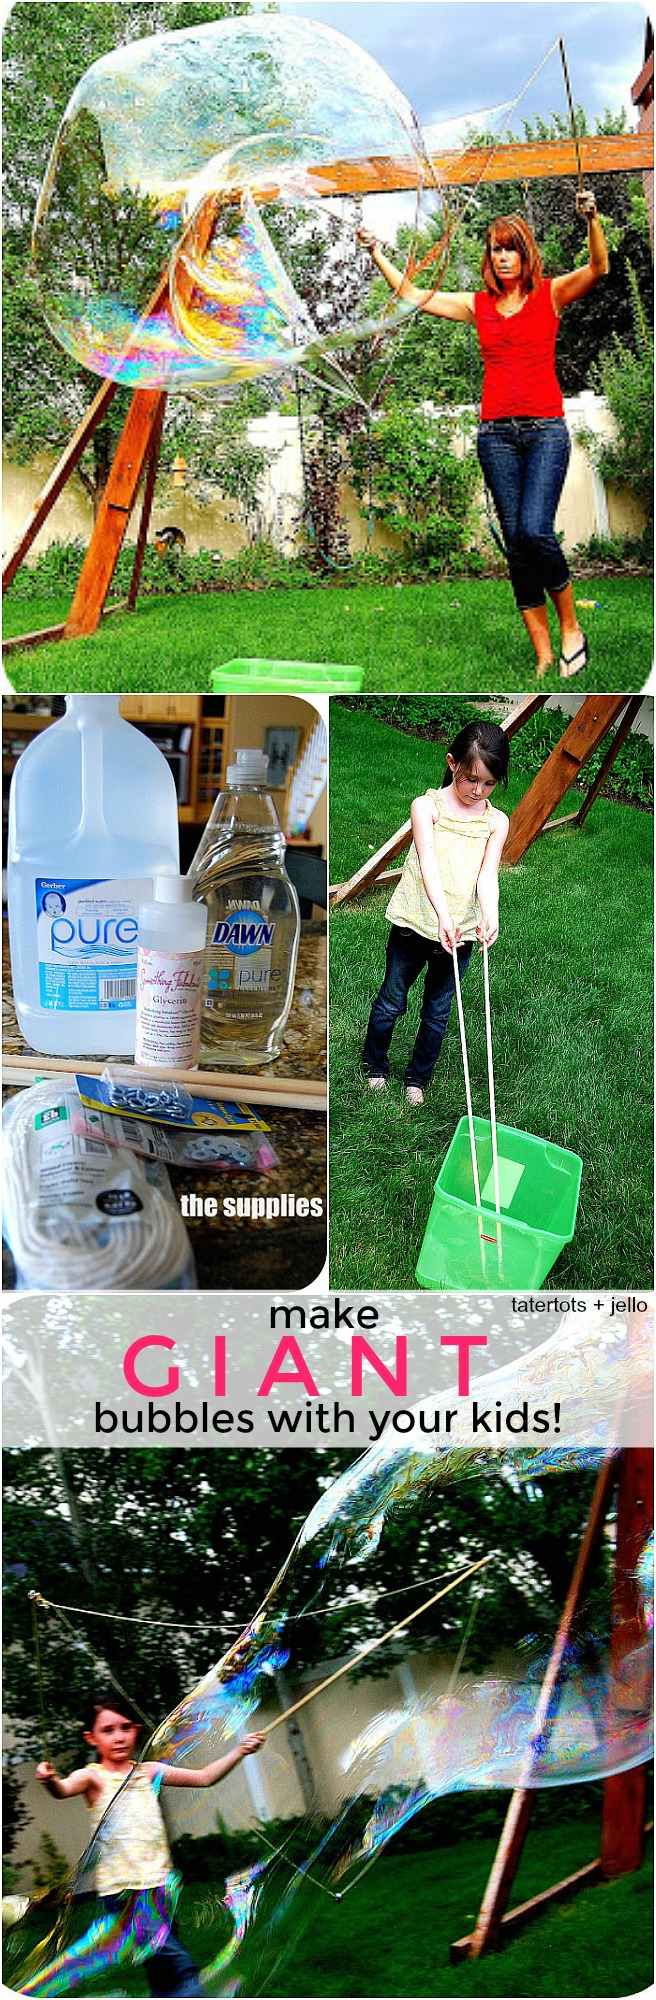 How to Make Giant Bubbles - it only takes a few ingredients!